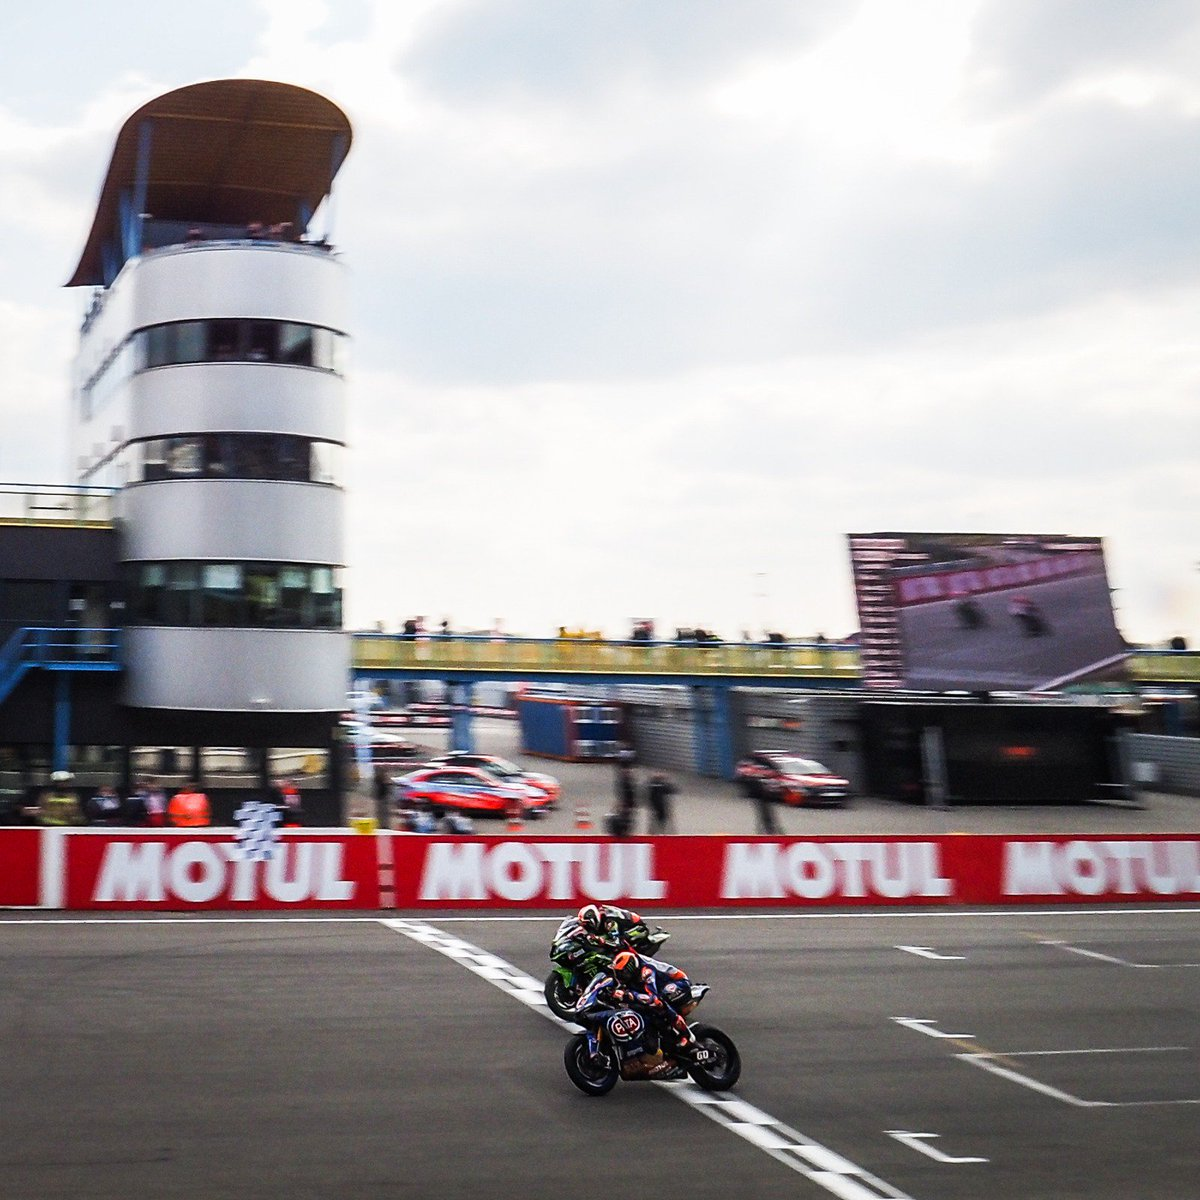 test Twitter Media - 🏁 This was the end of a last lap showdown between @jonathanrea and @mickeyvdmark at the @motul Dutch Round🙌   #NLDWorldSBK 🇳🇱 https://t.co/UGGvWTd4OK